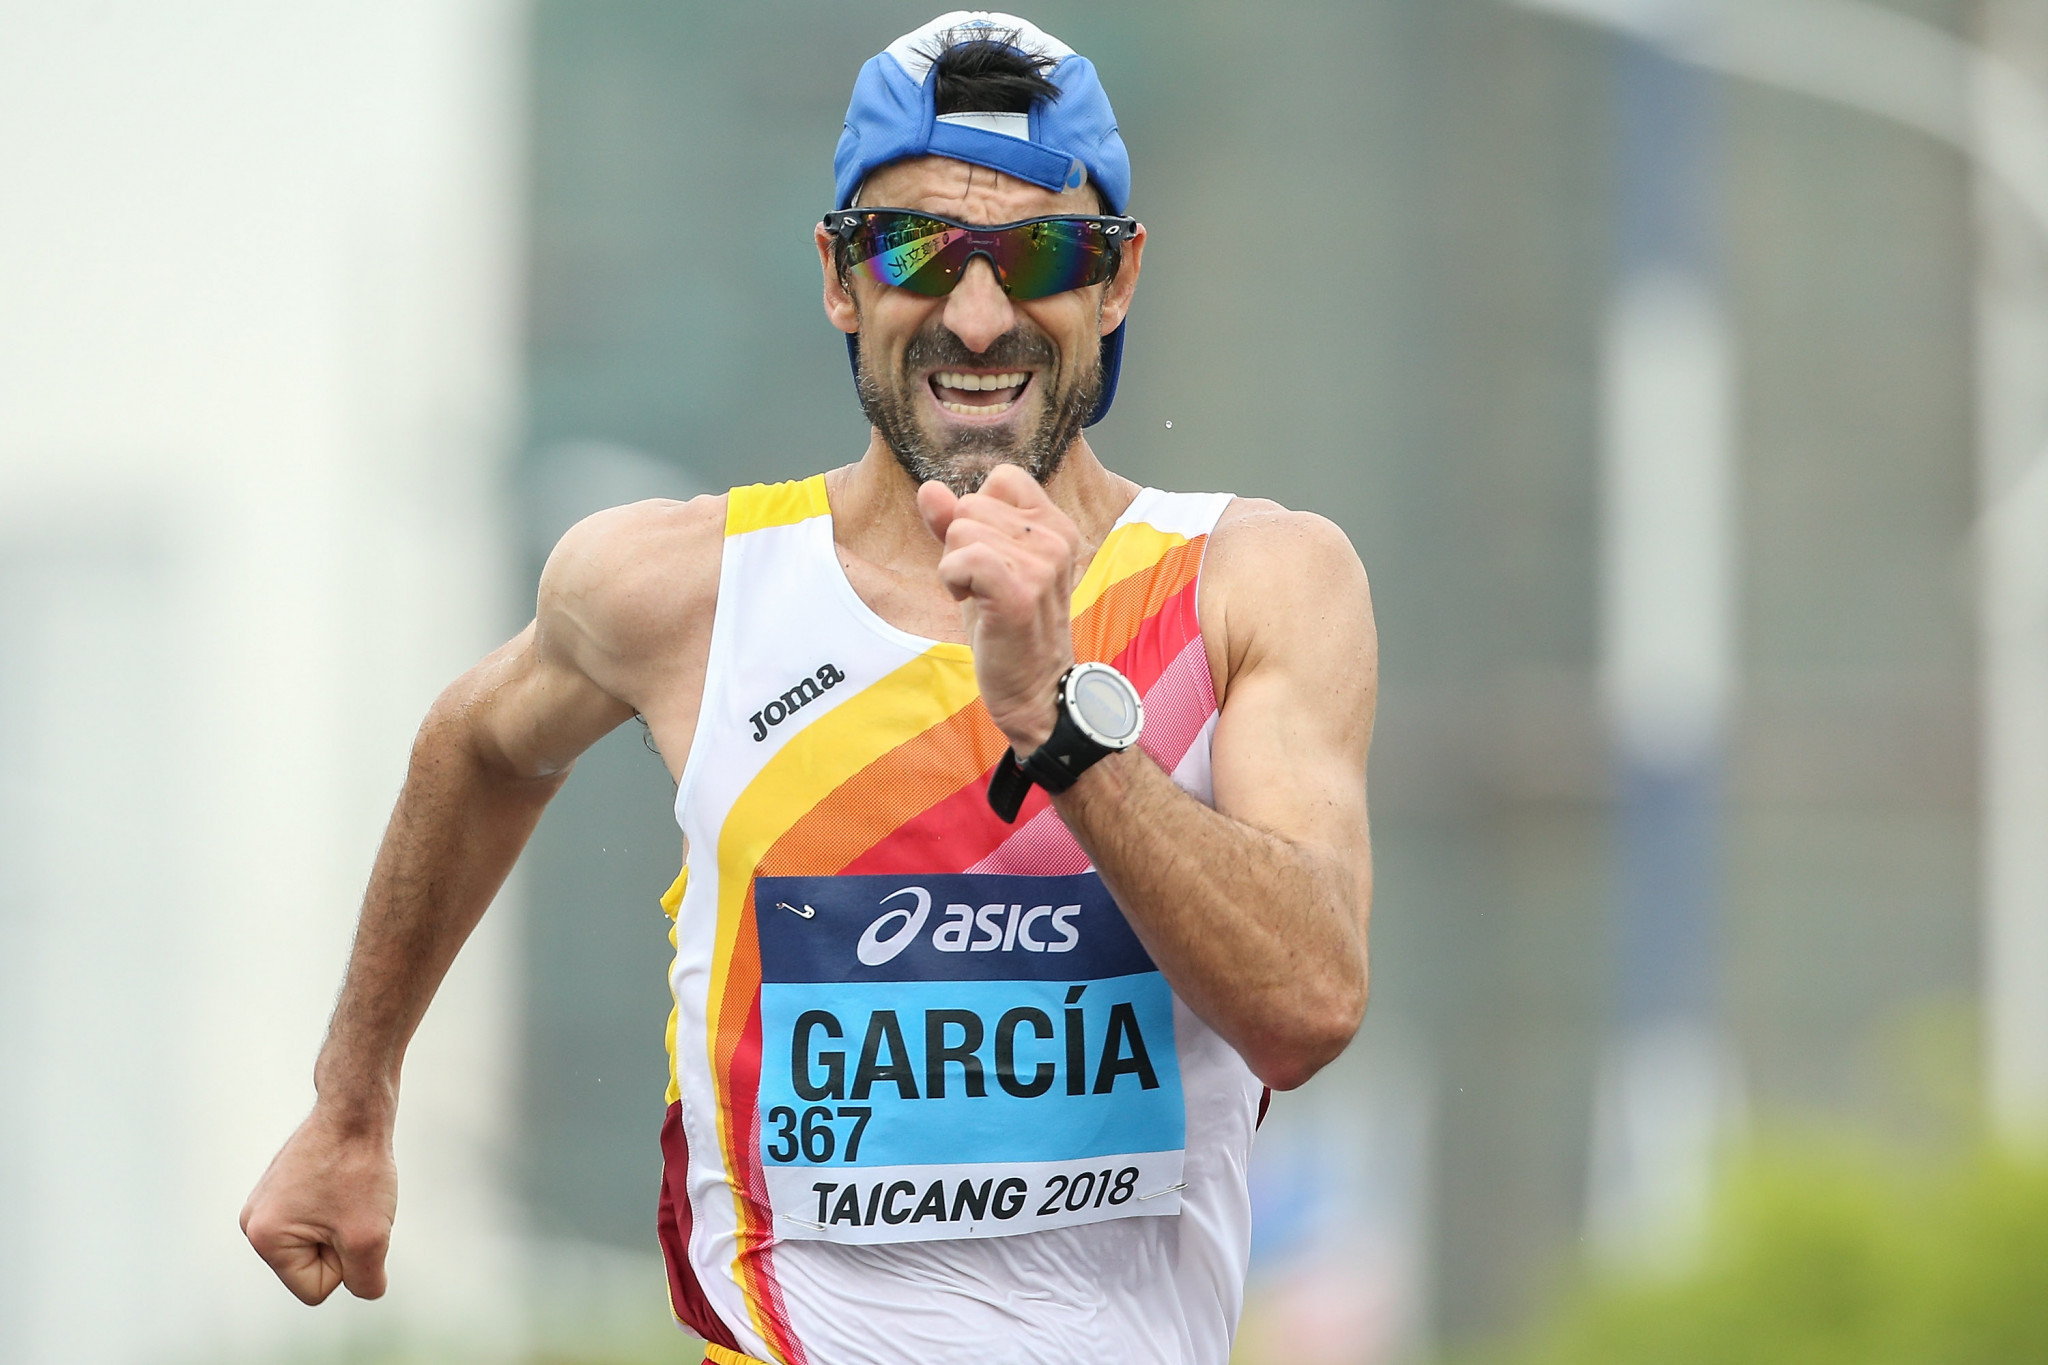 Jesús Ángel García has confirmed he will aim to compete at a record eighth Olympic Games ©Getty Images